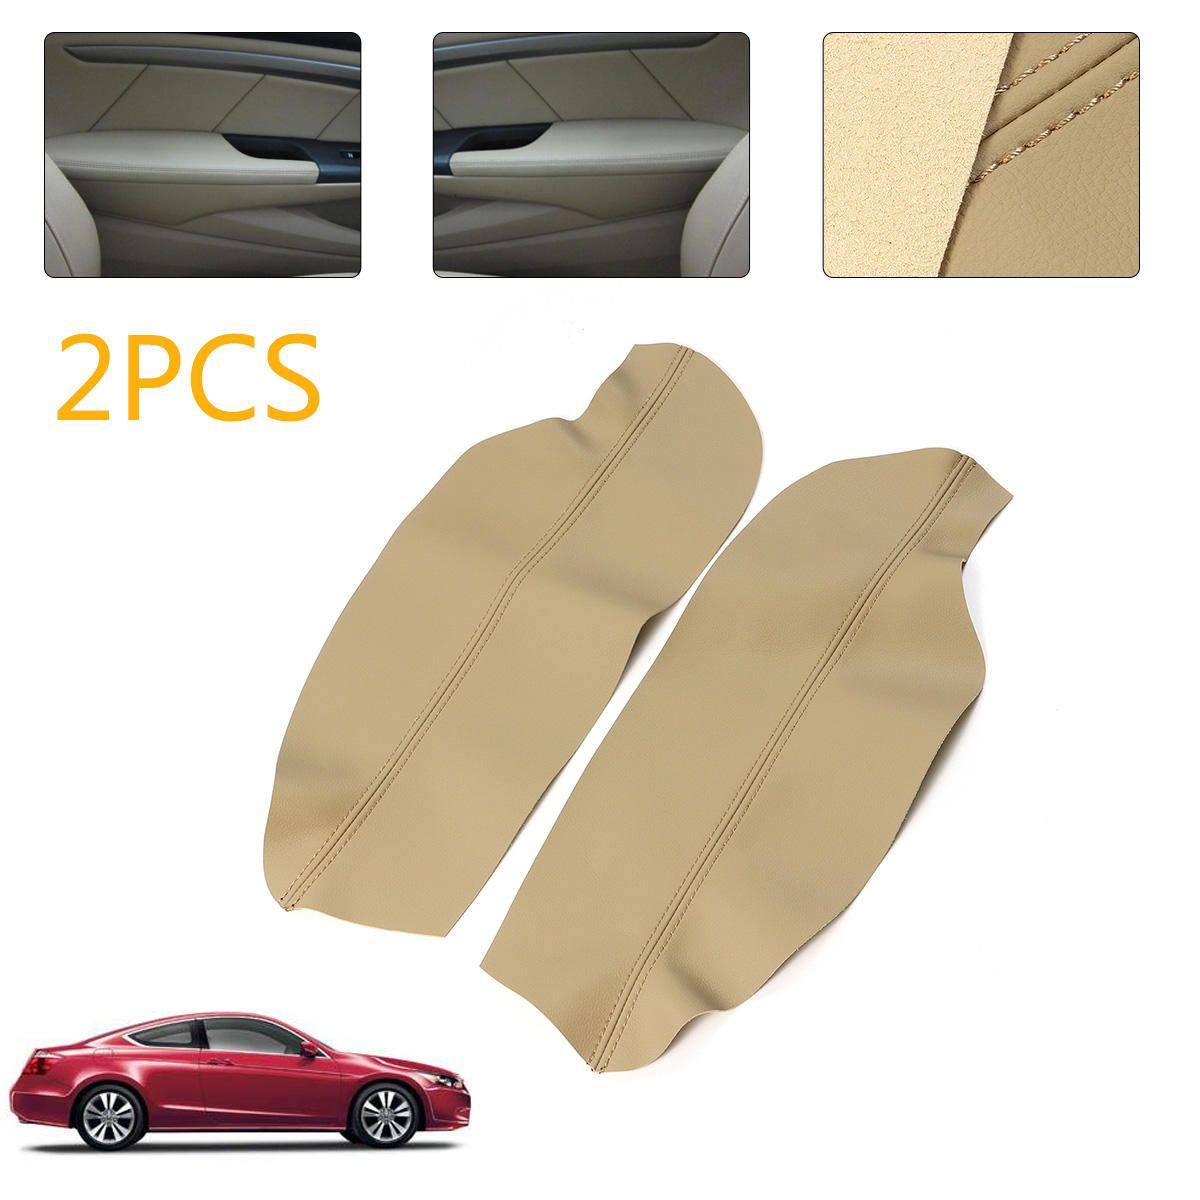 Leather Front Door Panels Armrest Cover For Honda Accord 2008 2012